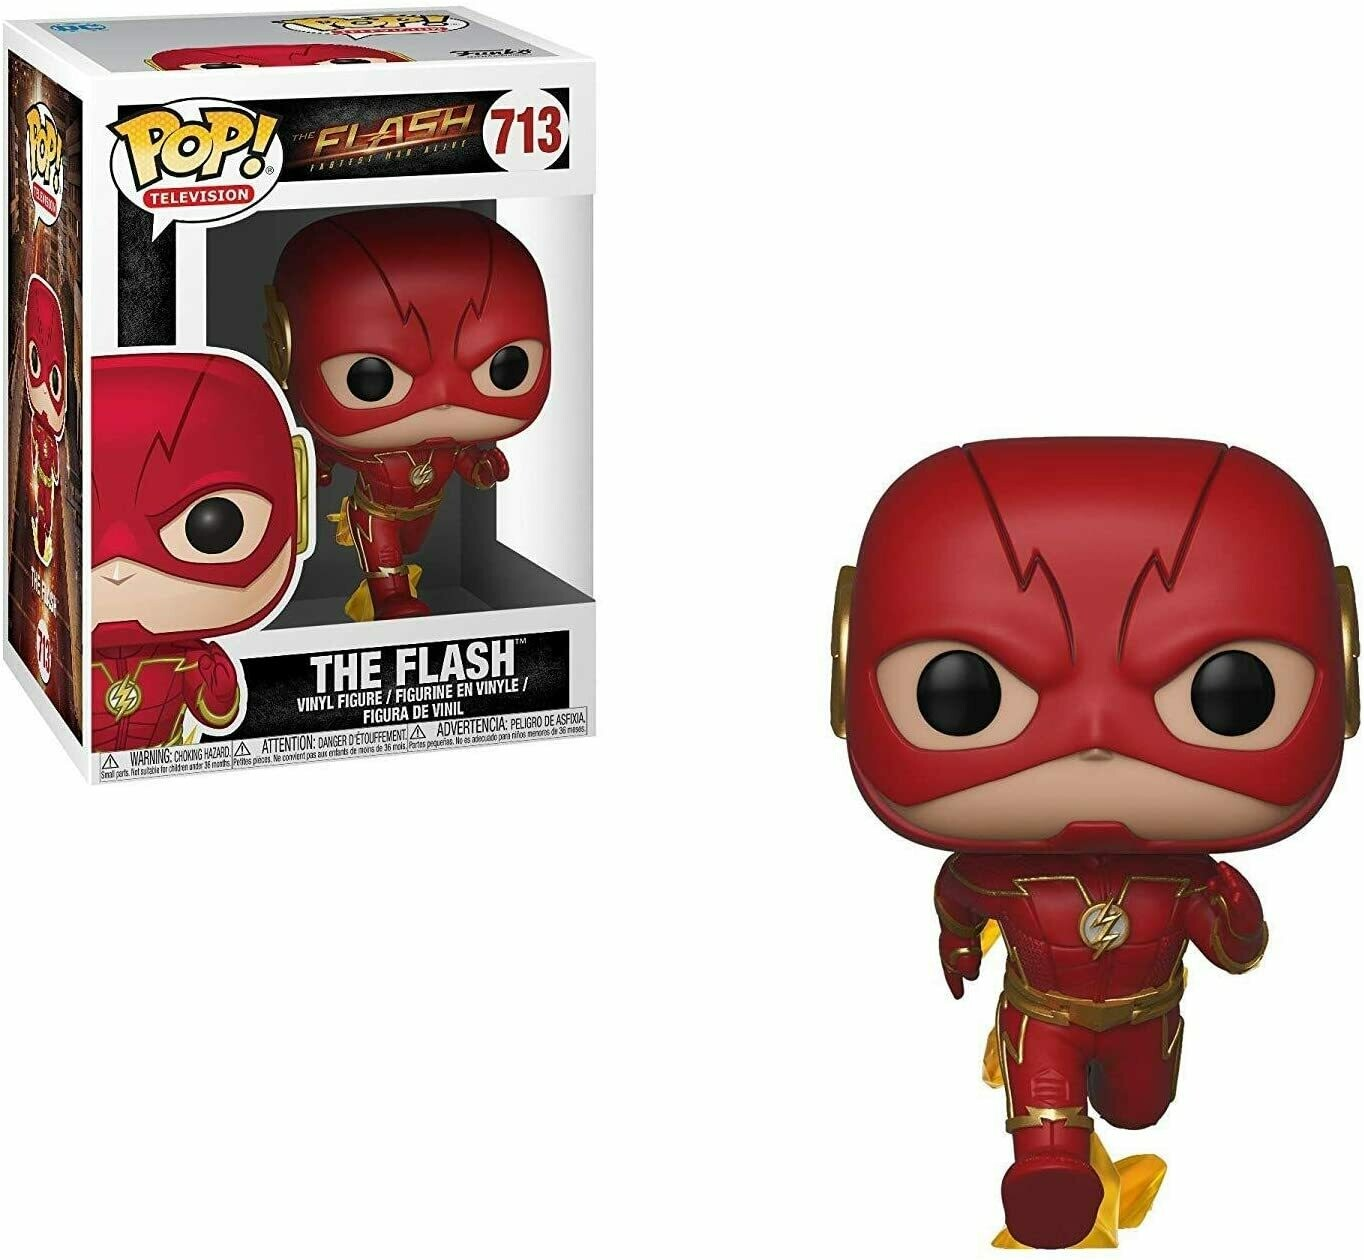 Funko Pop! The Flash #713